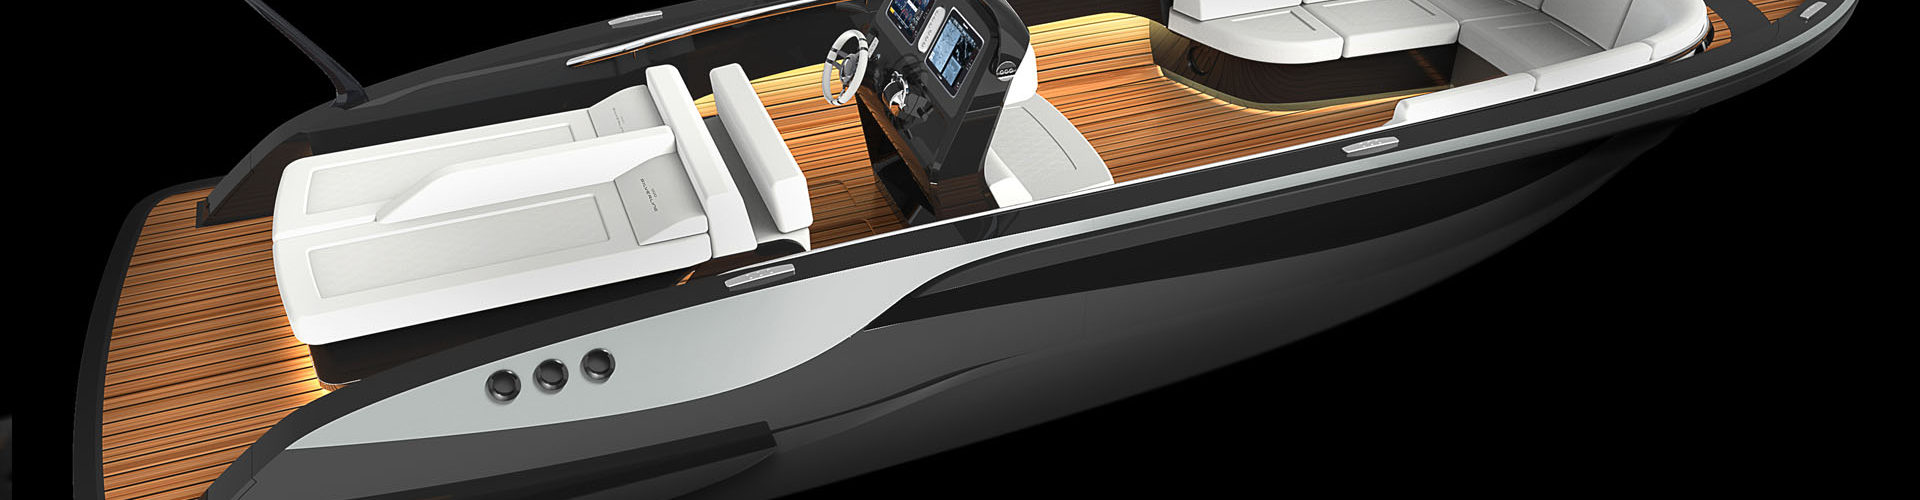 Tender boat Silverline designed by visionary yacht designer Hamid Bekradi